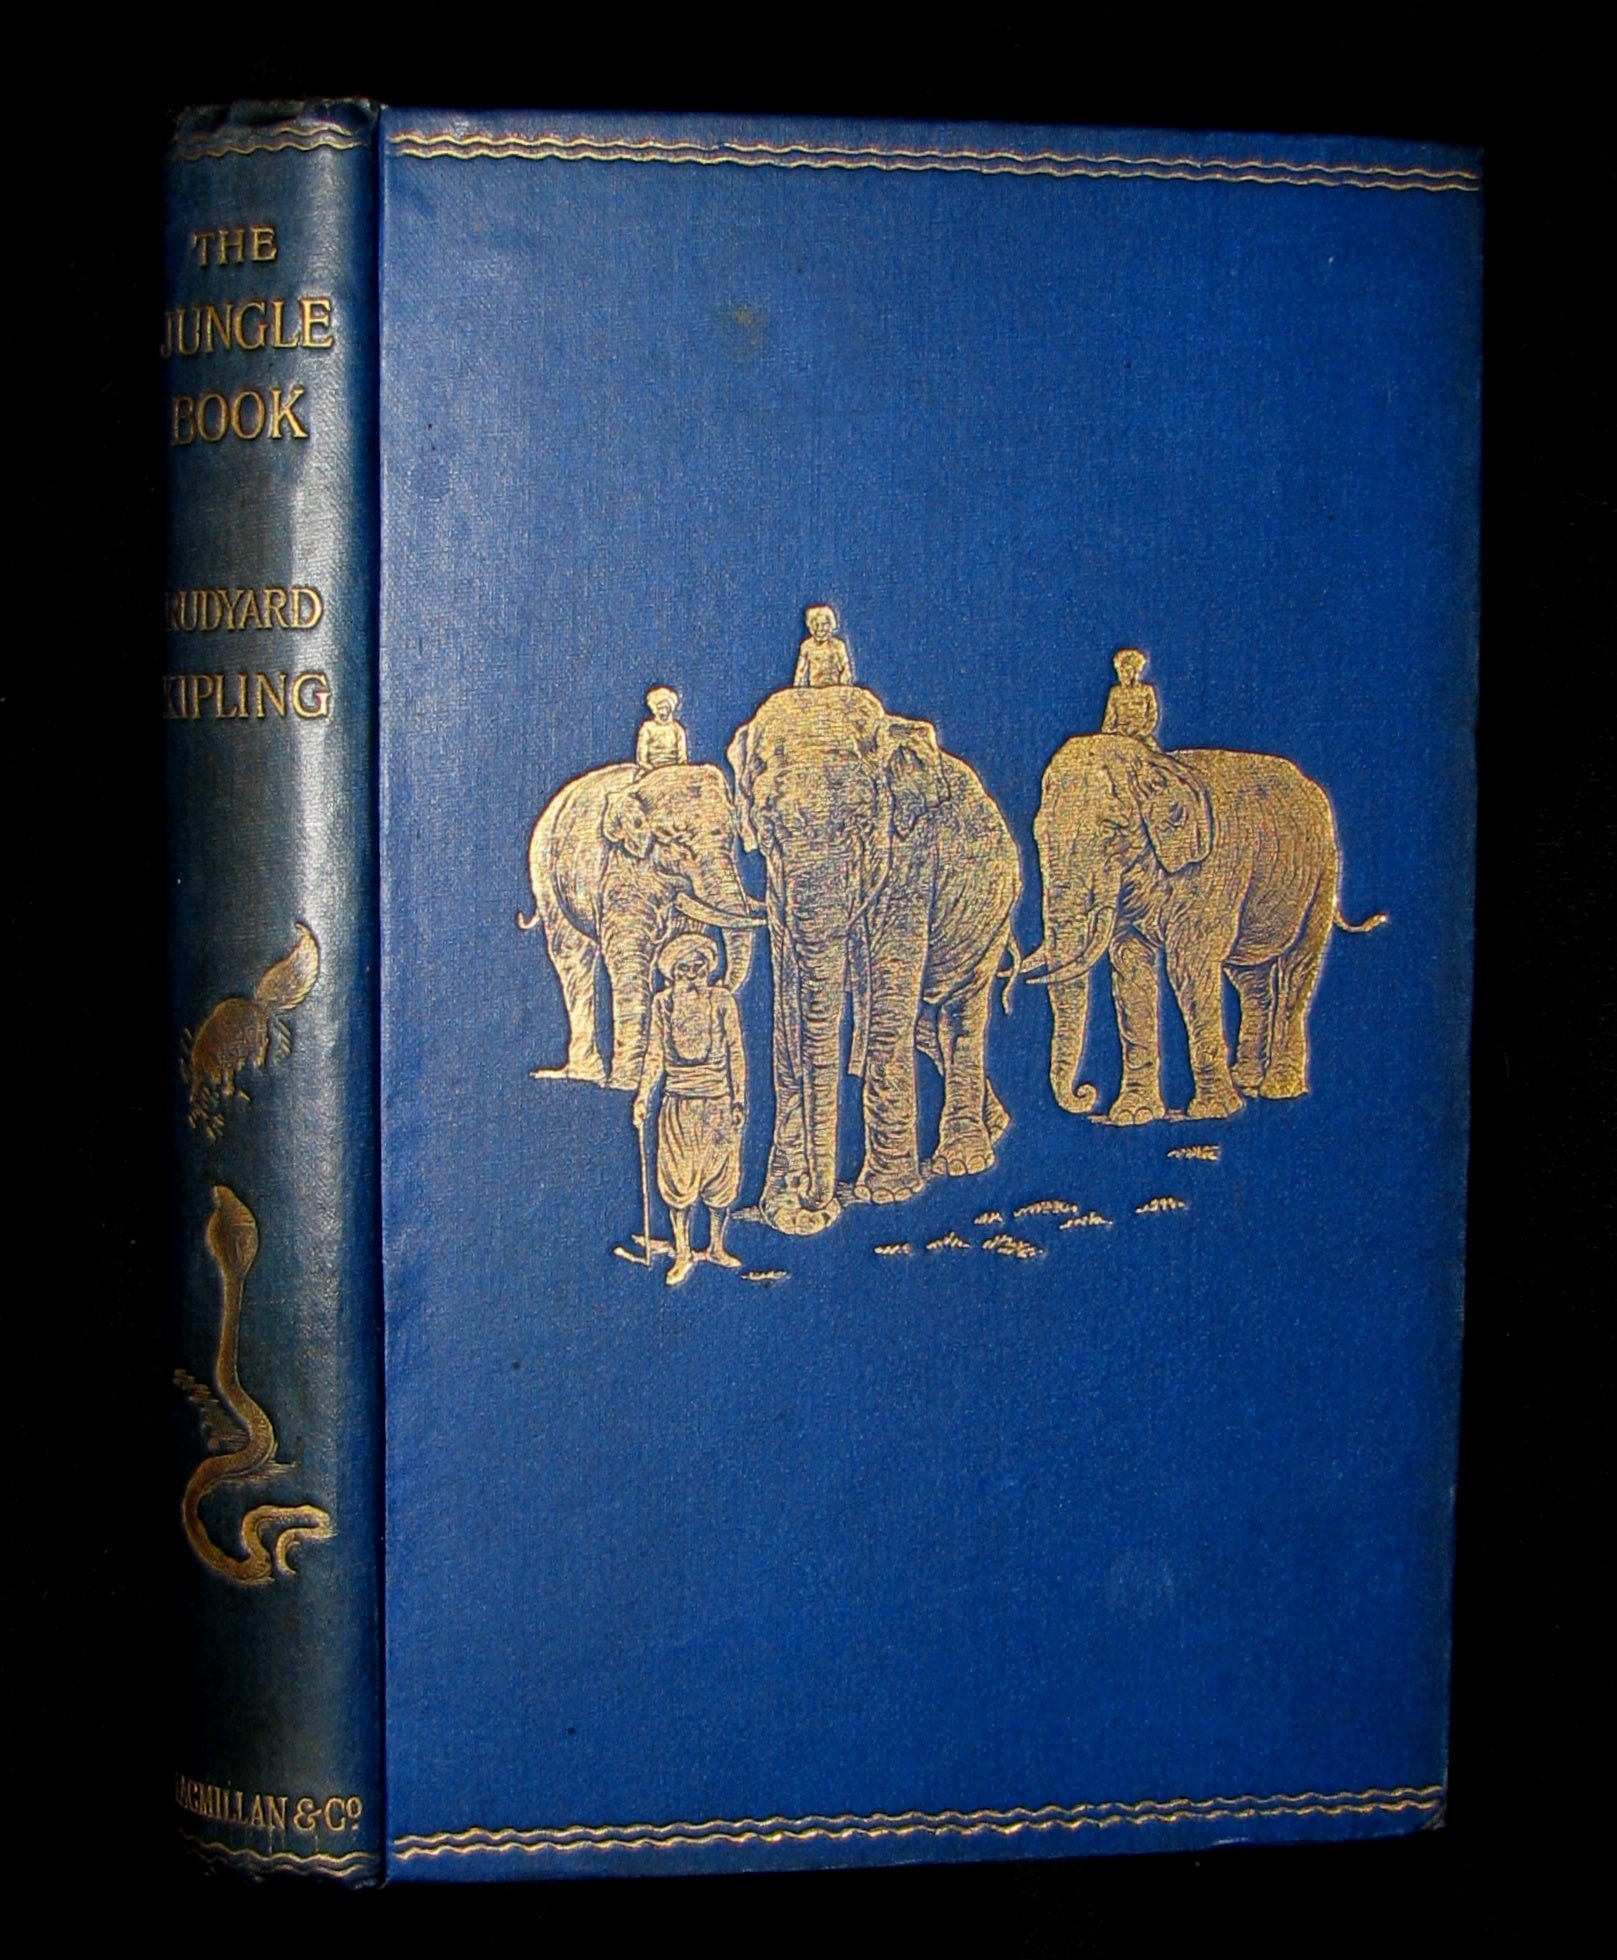 1895 Rare Book - The Jungle Book by Rudyard Kipling -  First Edition, 3rd Printing